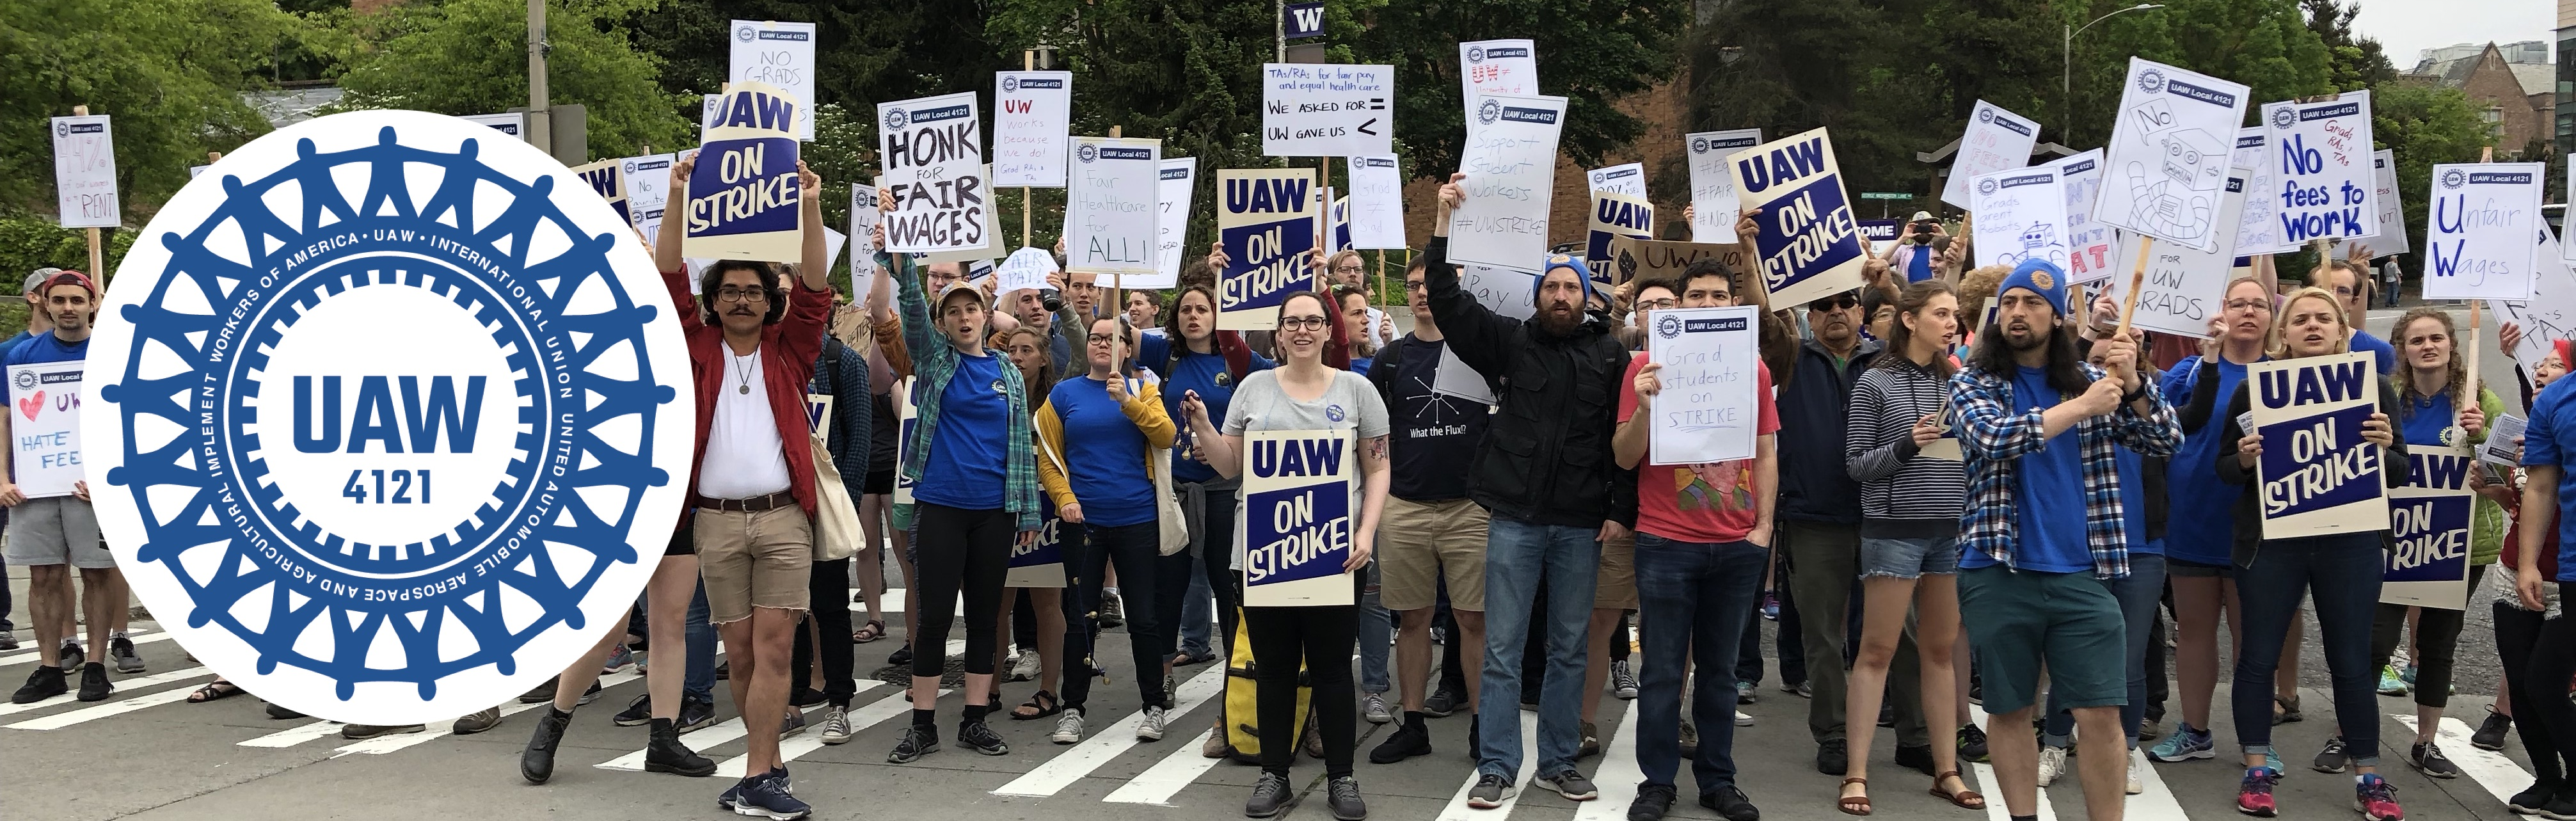 UAW 4121 - UW Works Because We Do